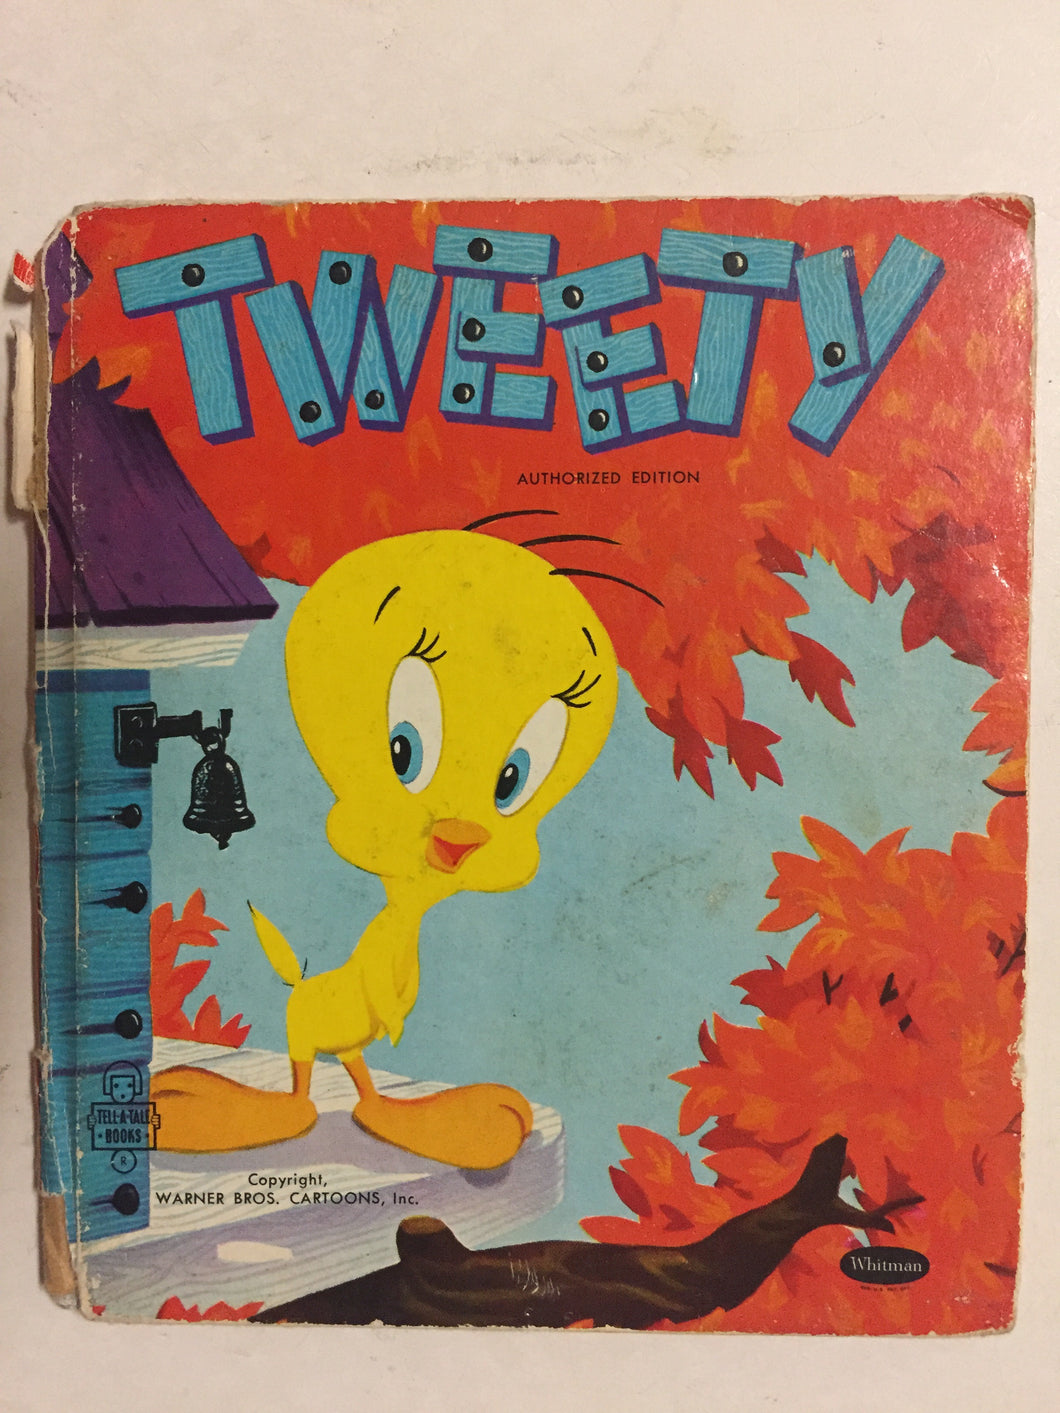 Tweety - Slick Cat Books